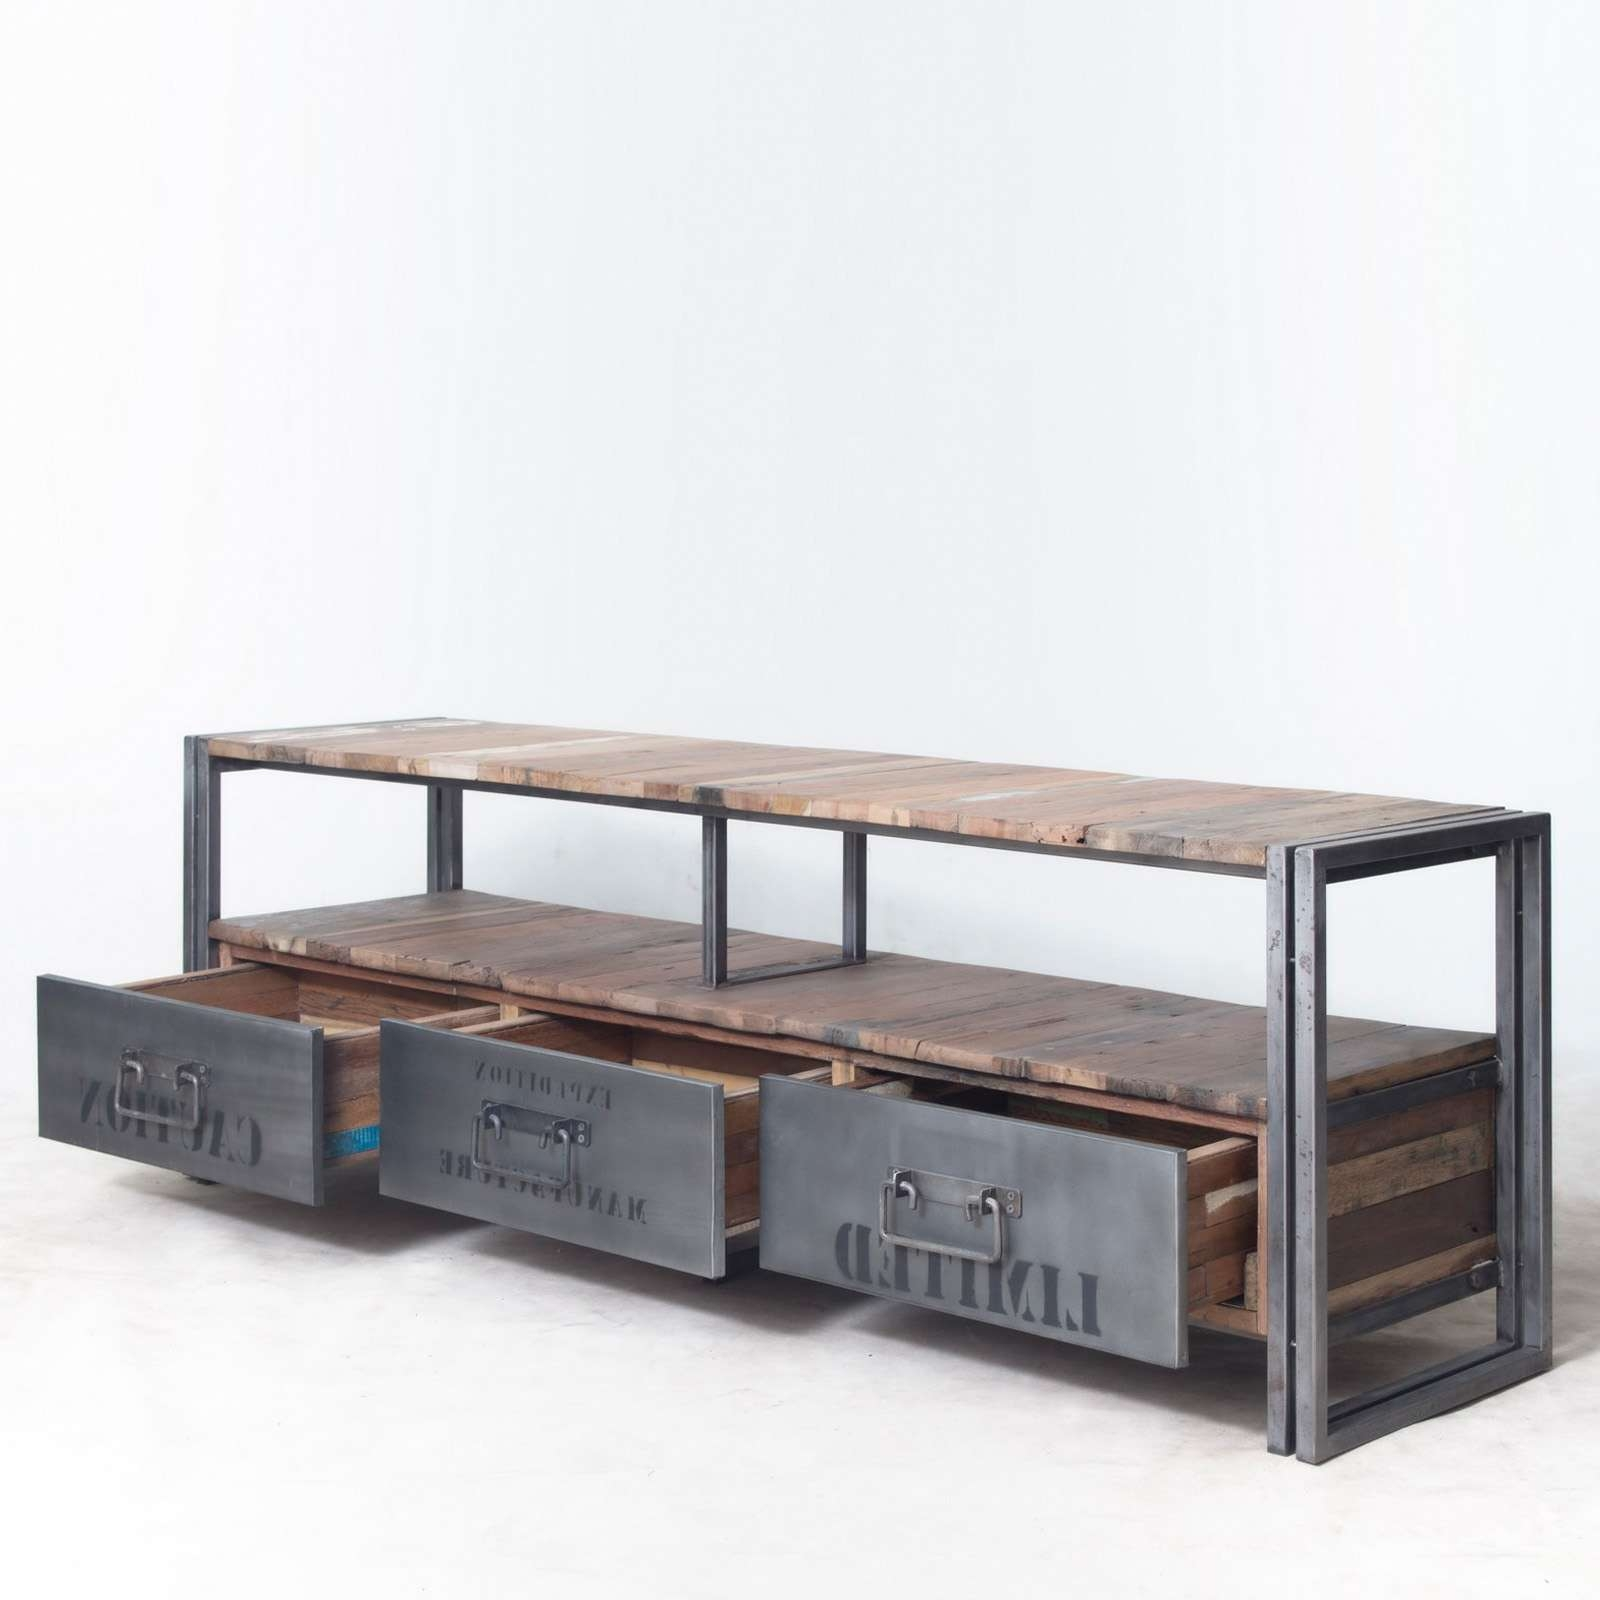 Rustic Industrial Wooden And Metal Tv Stand With Drawers Plus Within Industrial Metal Tv Stands (View 11 of 15)